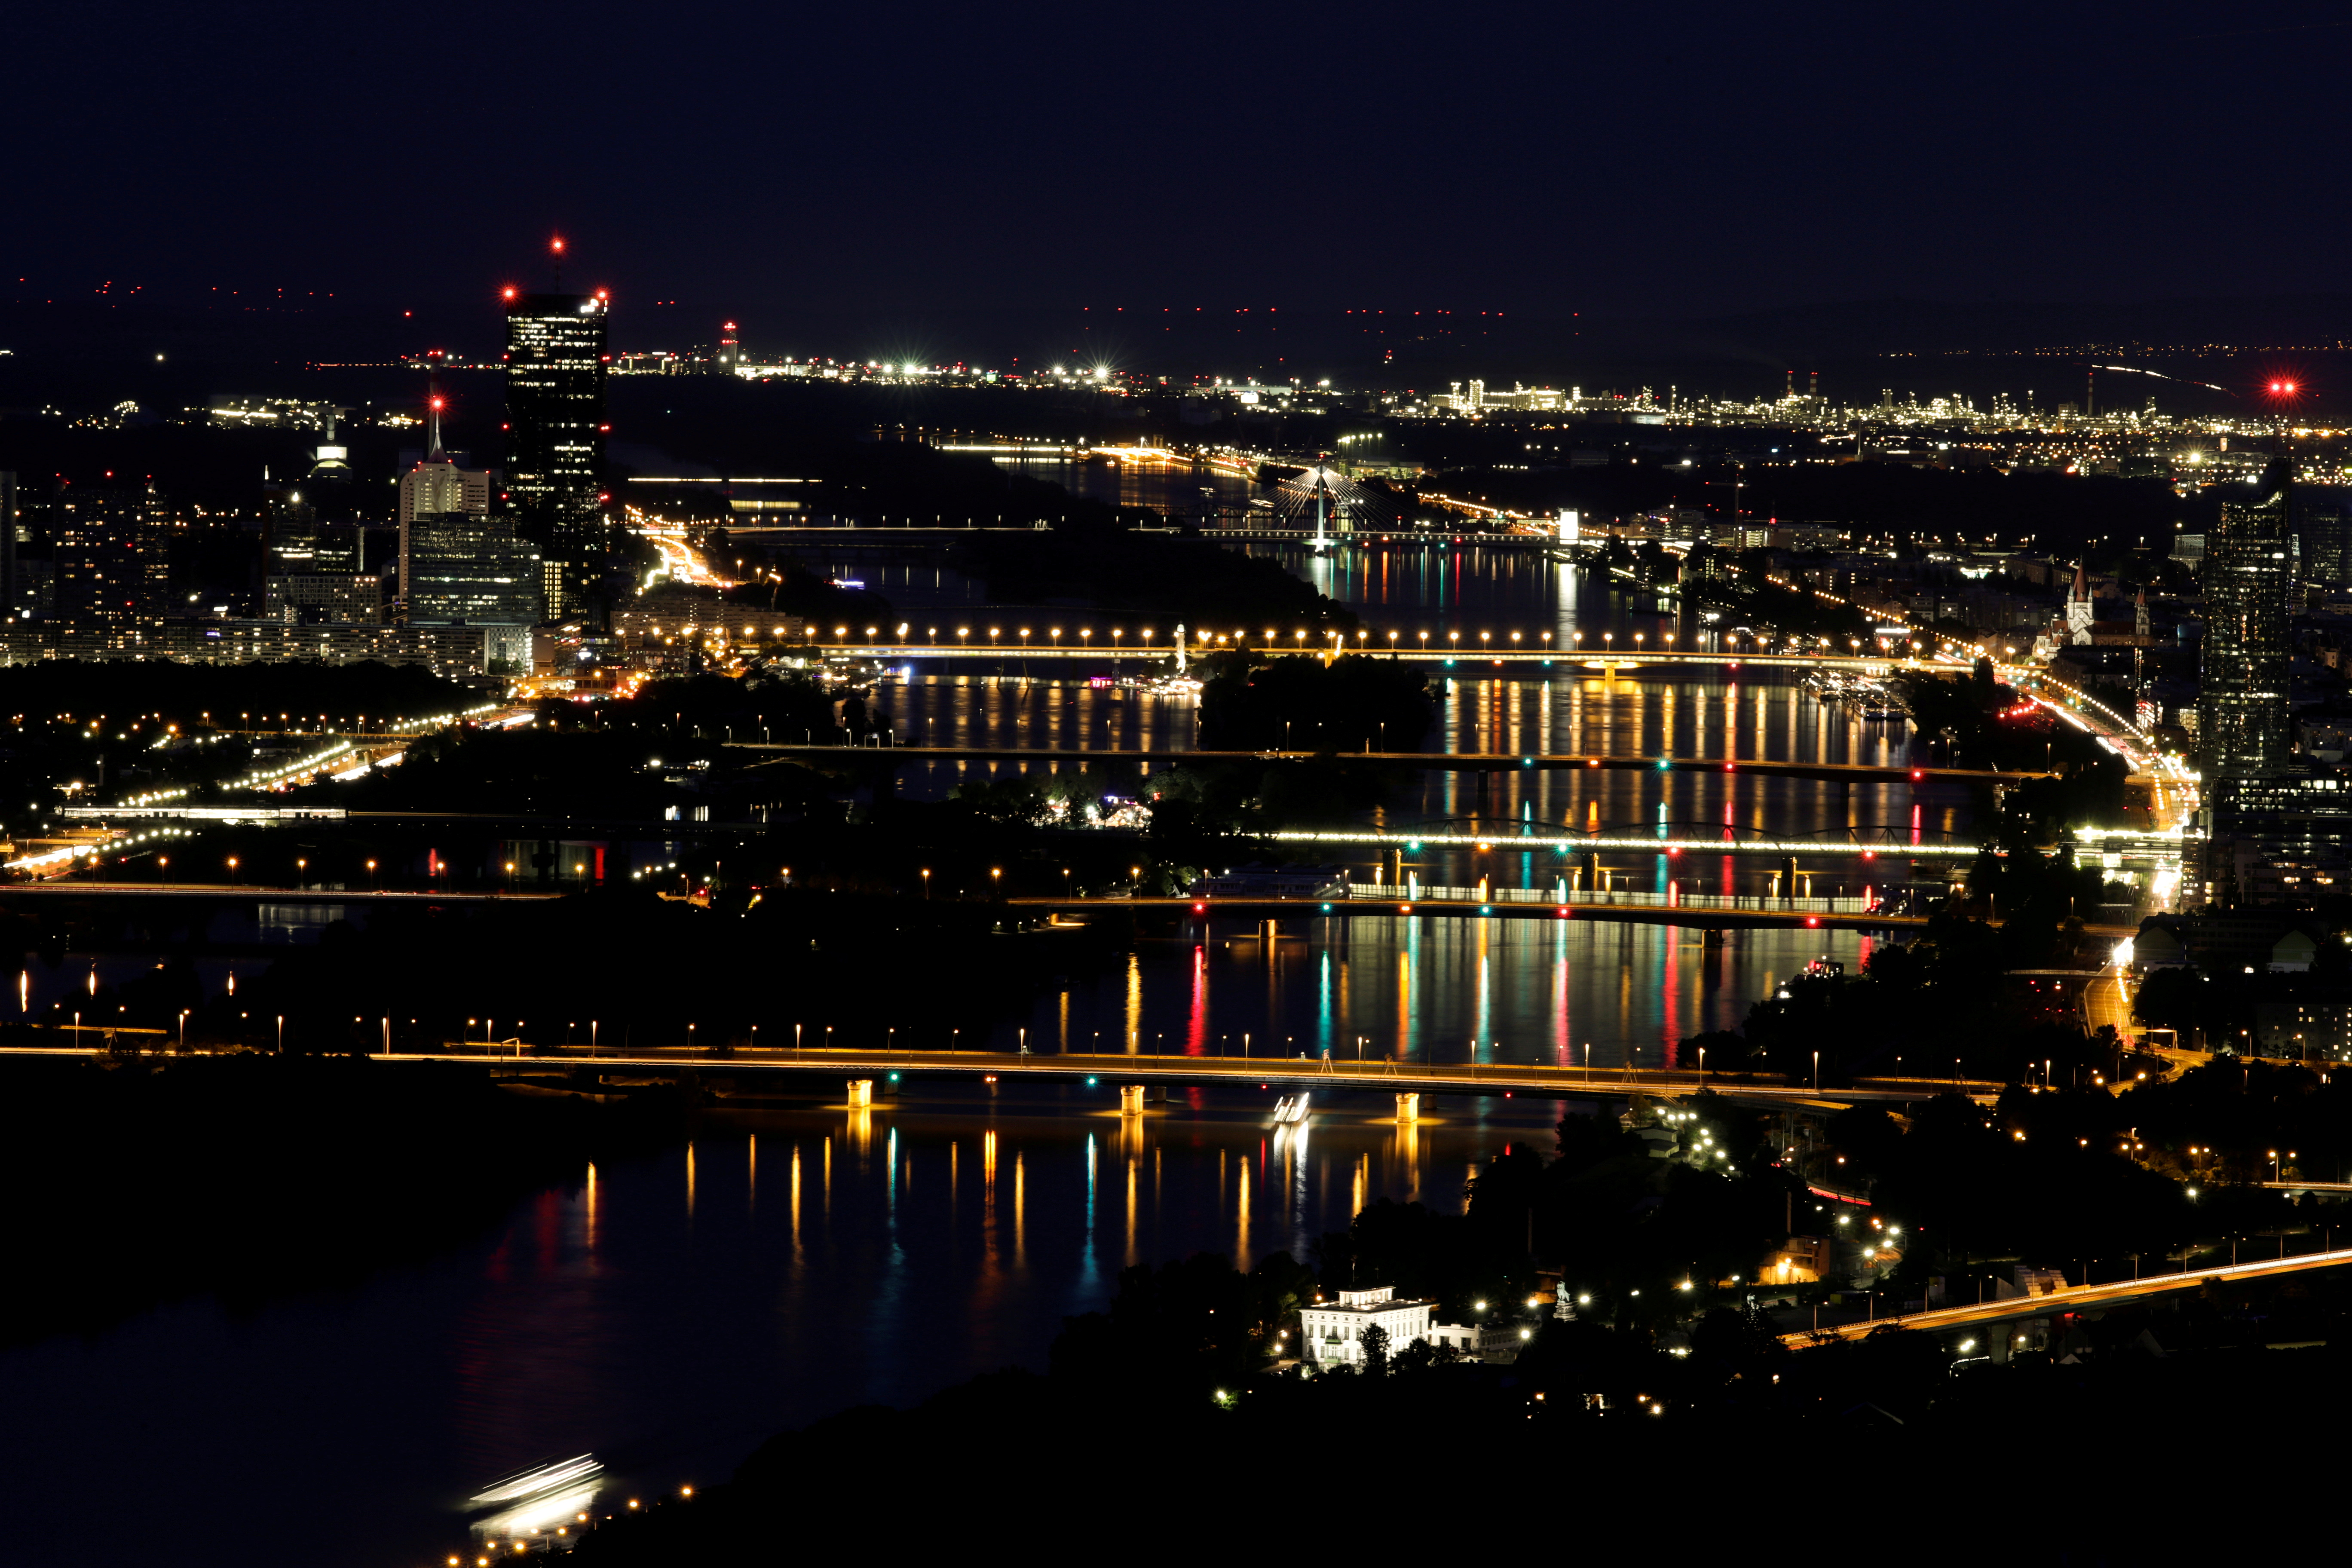 A long time exposure shows a night view of bridges over the Danube river from Leopoldsberg in Vienna, Austria August 15, 2019.  REUTERS/Leonhard Foeger/File Photo